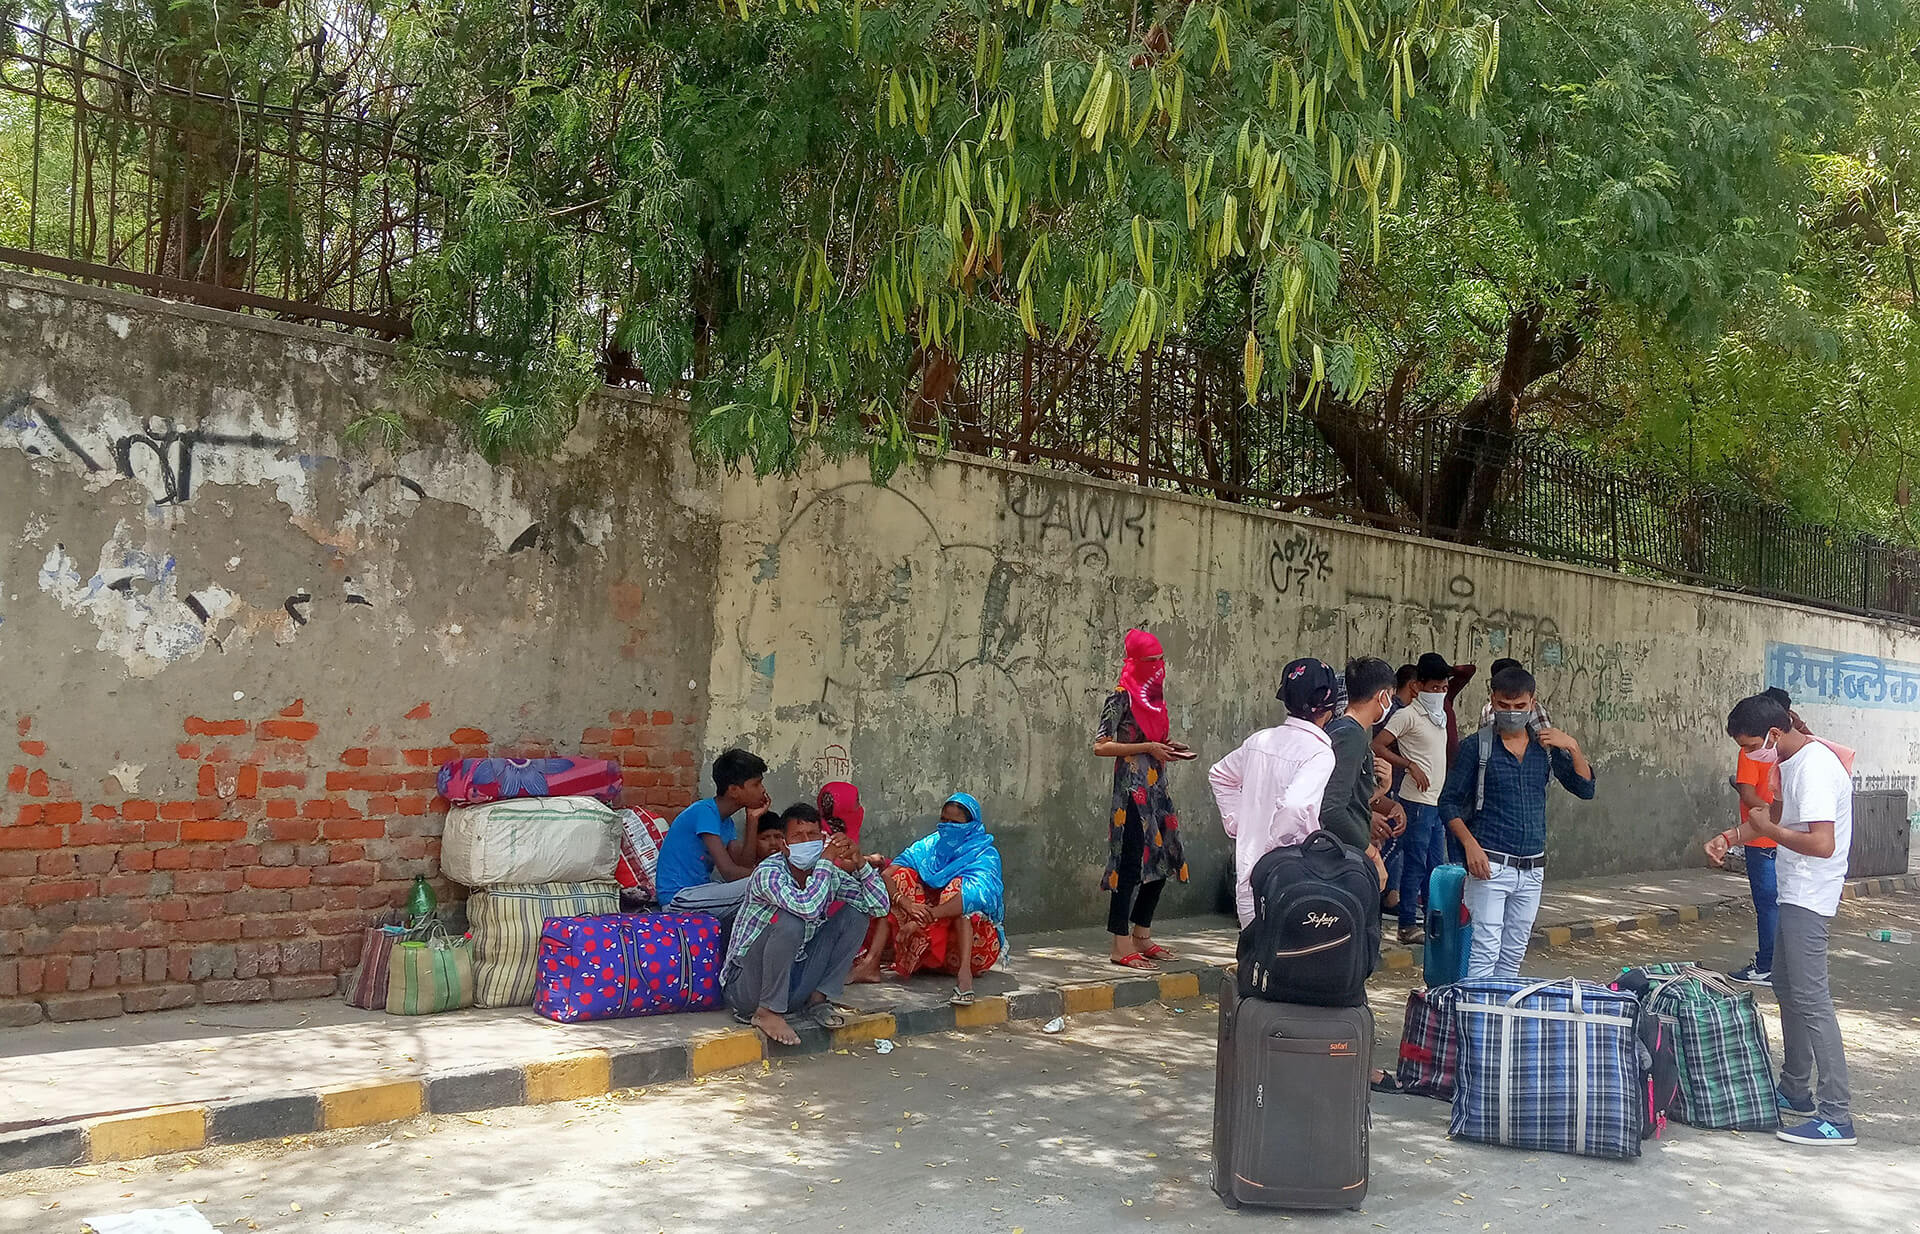 Stranded workers during the fourth phase of the Indian lockdown| Ranjit Sabikhi on unskilled Indian migrant labourer | STIRworld